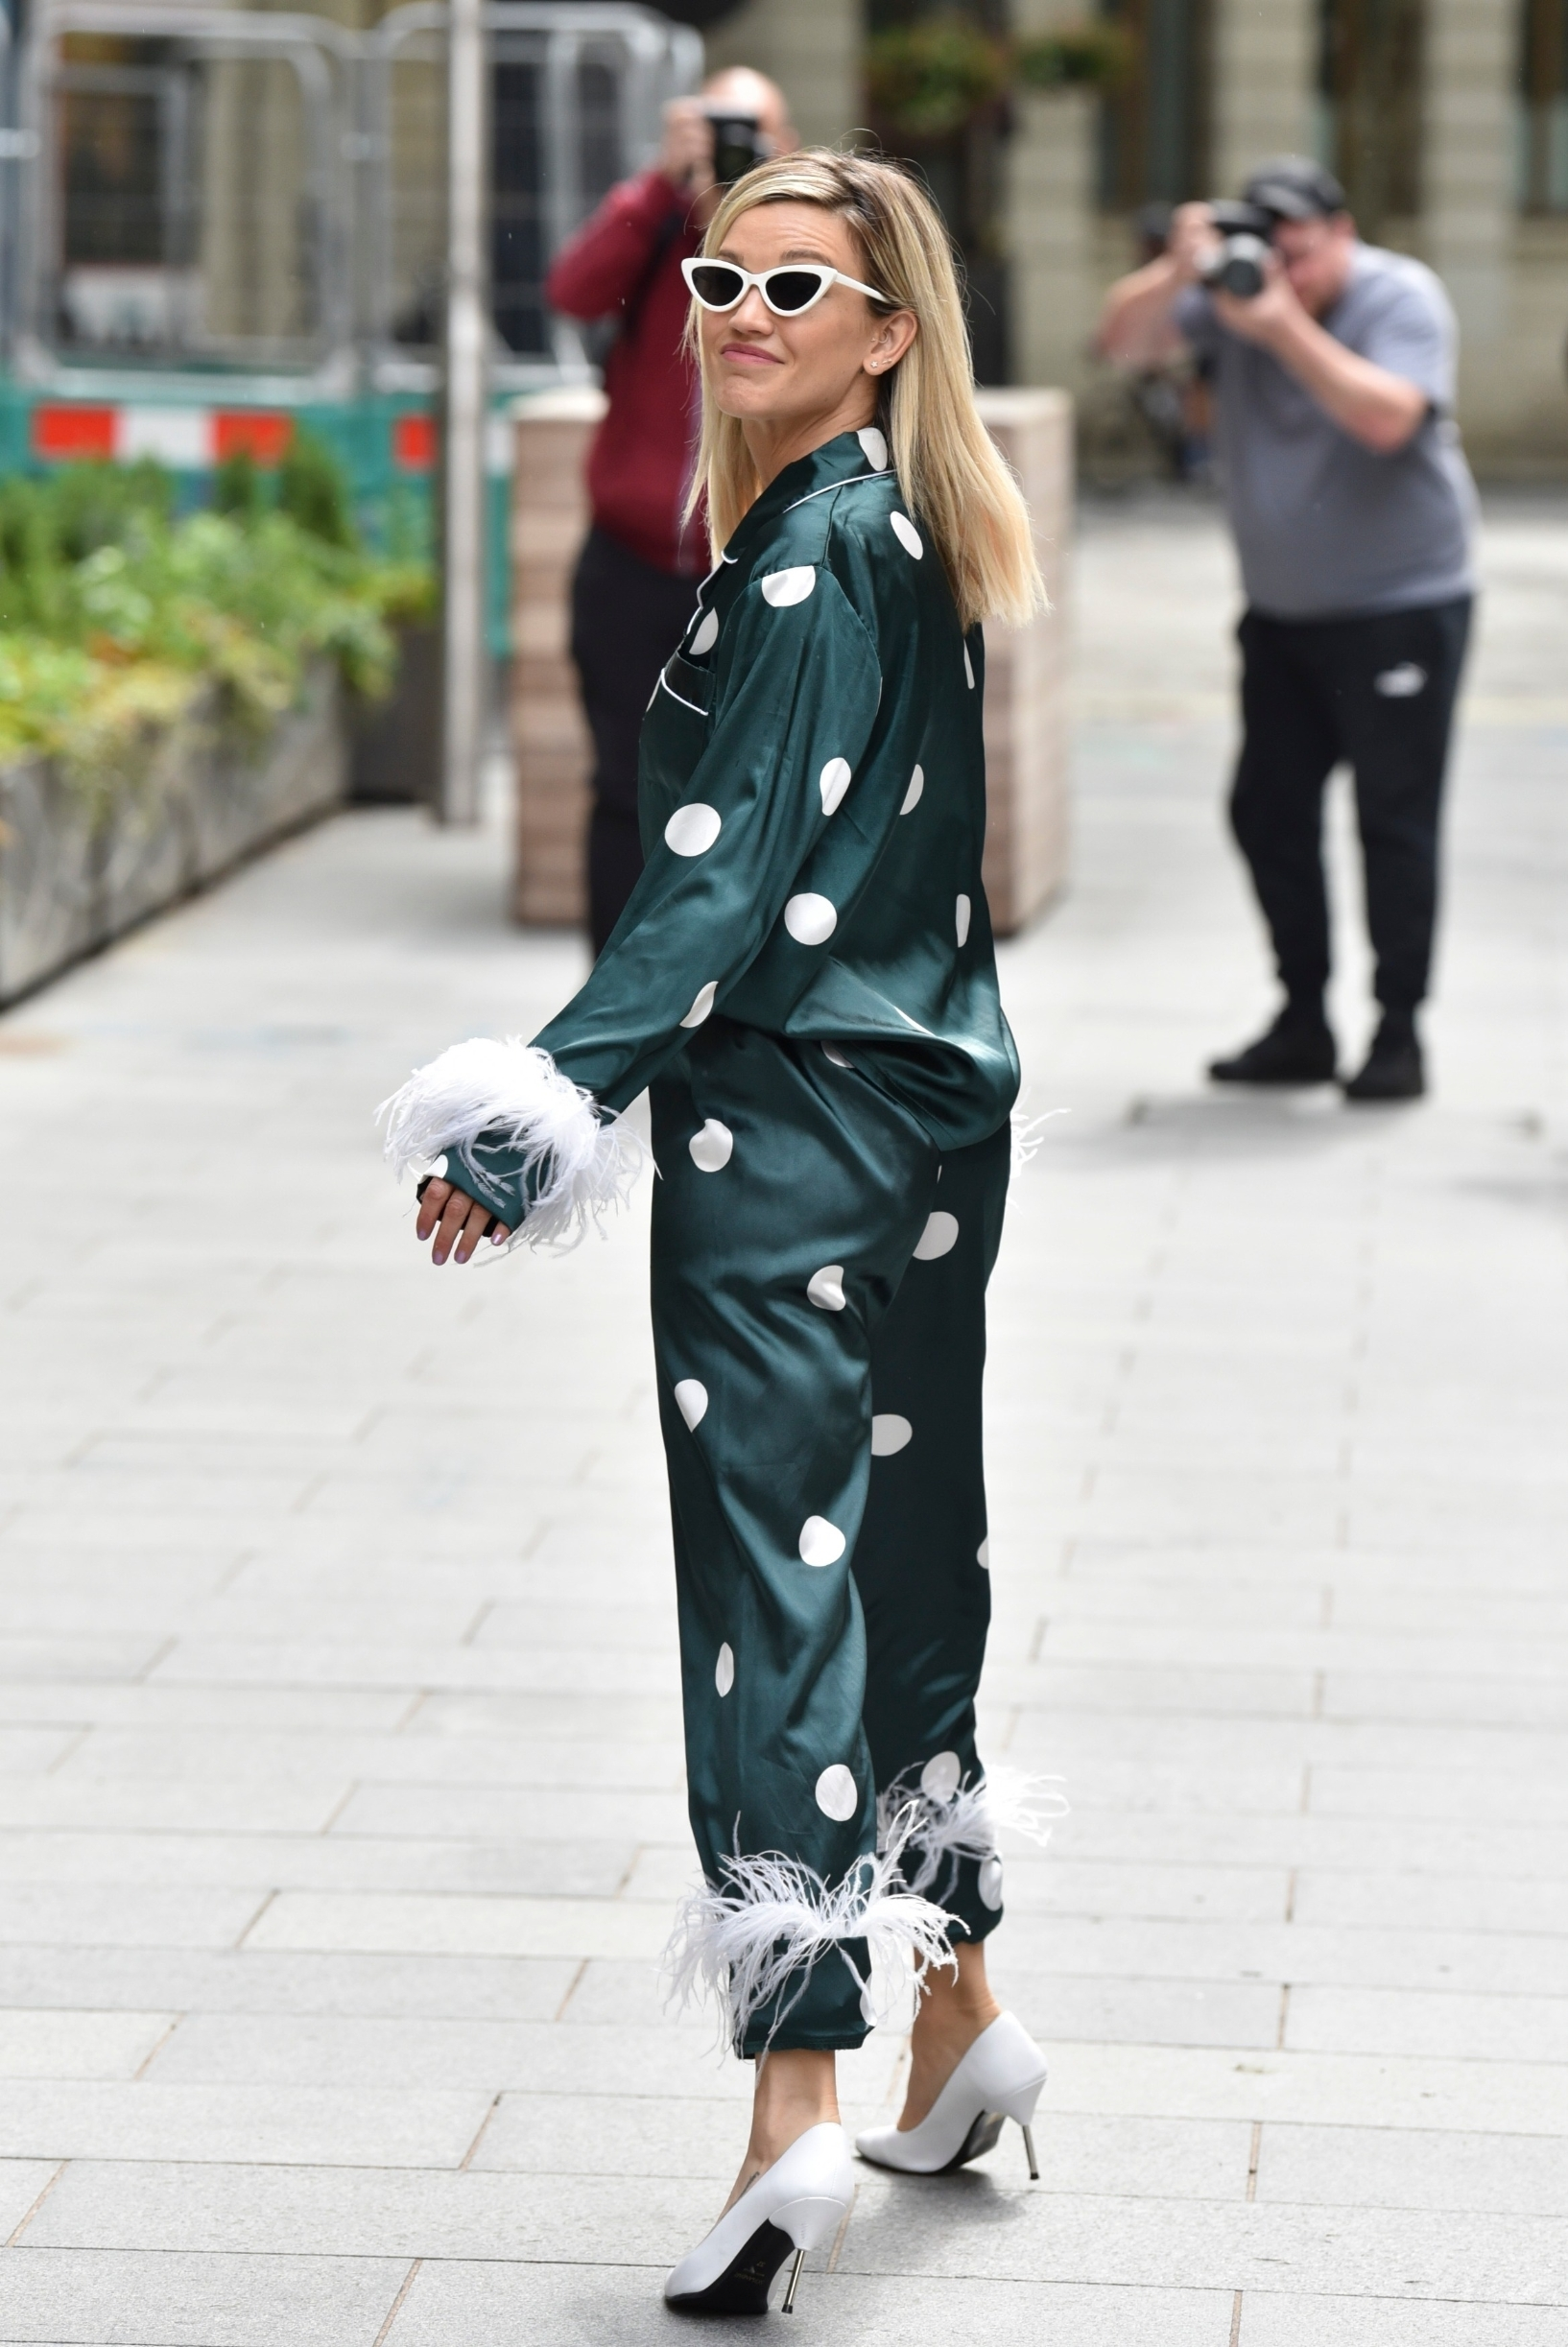 London, UNITED KINGDOM  - Singer Ashley Roberts seen looking trendy in a forest green pyjama suit while leaving Heart during the Global's Make Some Noise Emergency Appeal Day.  BACKGRID UK 19 JUNE 2020,Image: 533464432, License: Rights-managed, Restrictions: , Model Release: no, Credit line: RUSHEN / BACKGRID / Backgrid UK / Profimedia